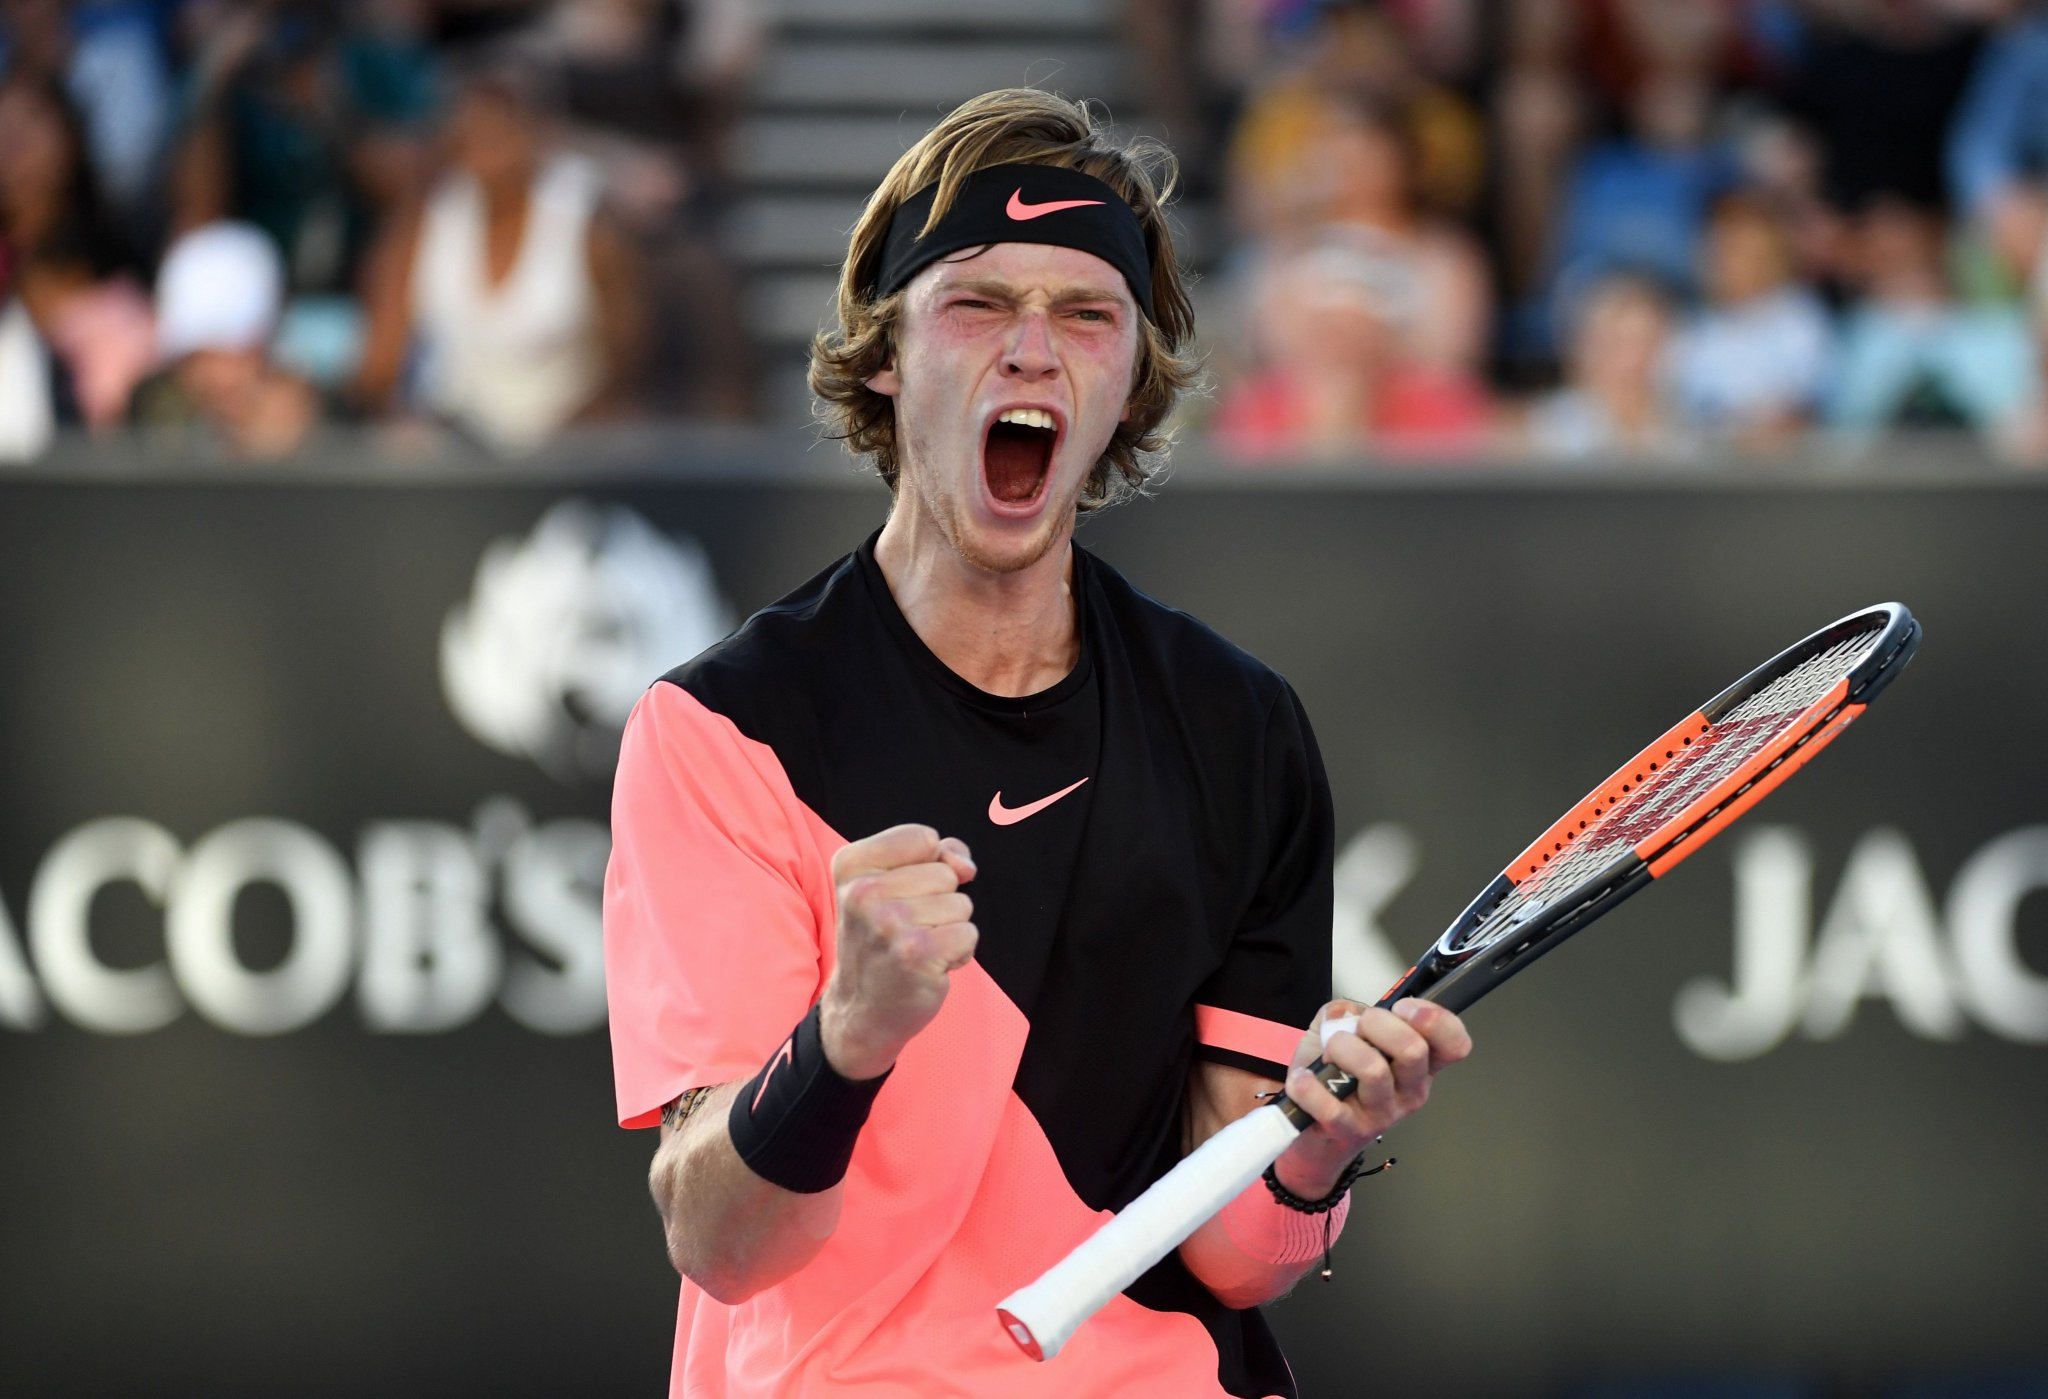 �� clash incoming...  Rublev tops Baghdatis to set #AusOpen 3R meeting with Dimitrov ➡️ https://t.co/1yWqUIhFWY https://t.co/7KZRXLICcJ